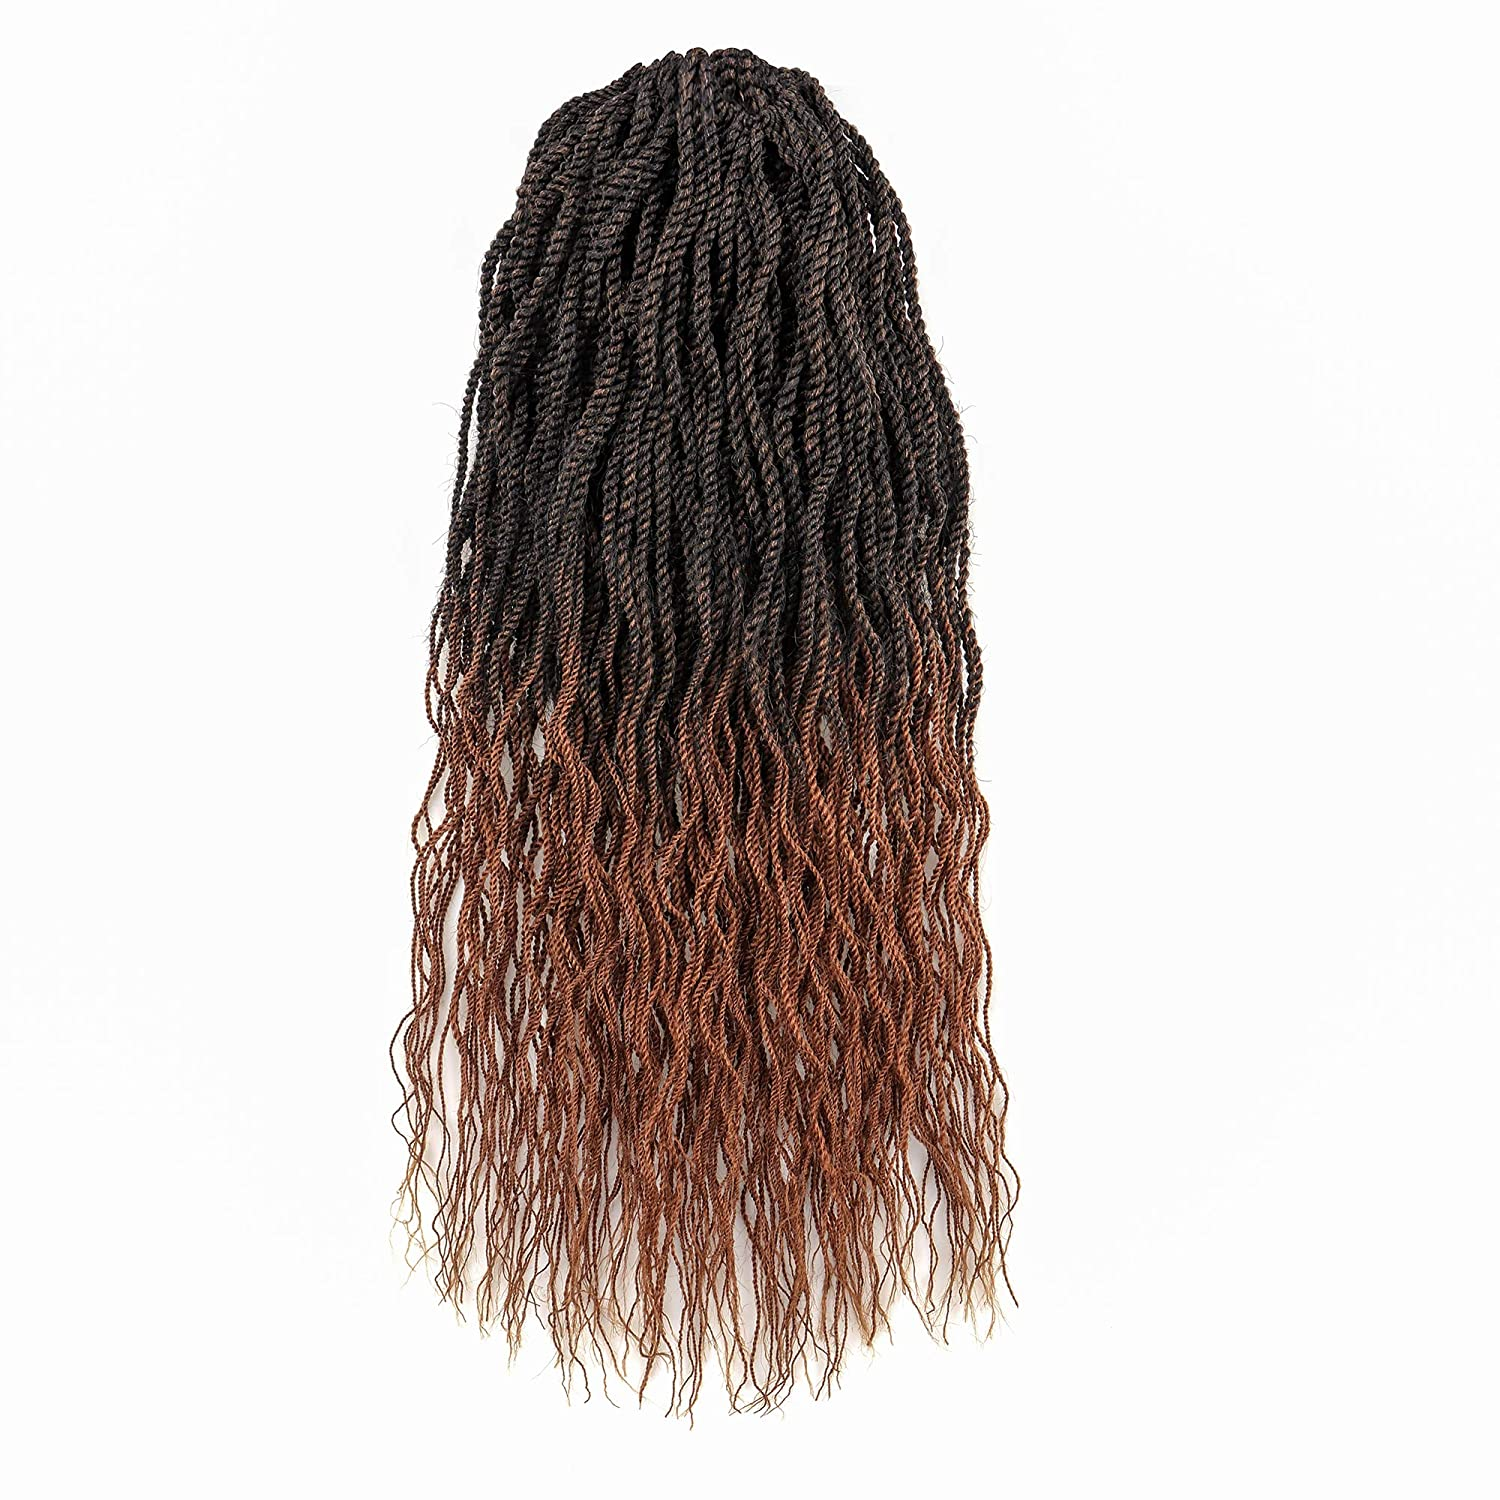 Wavy Senegalese Twist Crochet Hair 20Inch 7Packs Braids Wavy Ends Synthetic Hair Extensions Kanekalon Curly Crochet Twist Braiding Hair (20 Inch, T30)